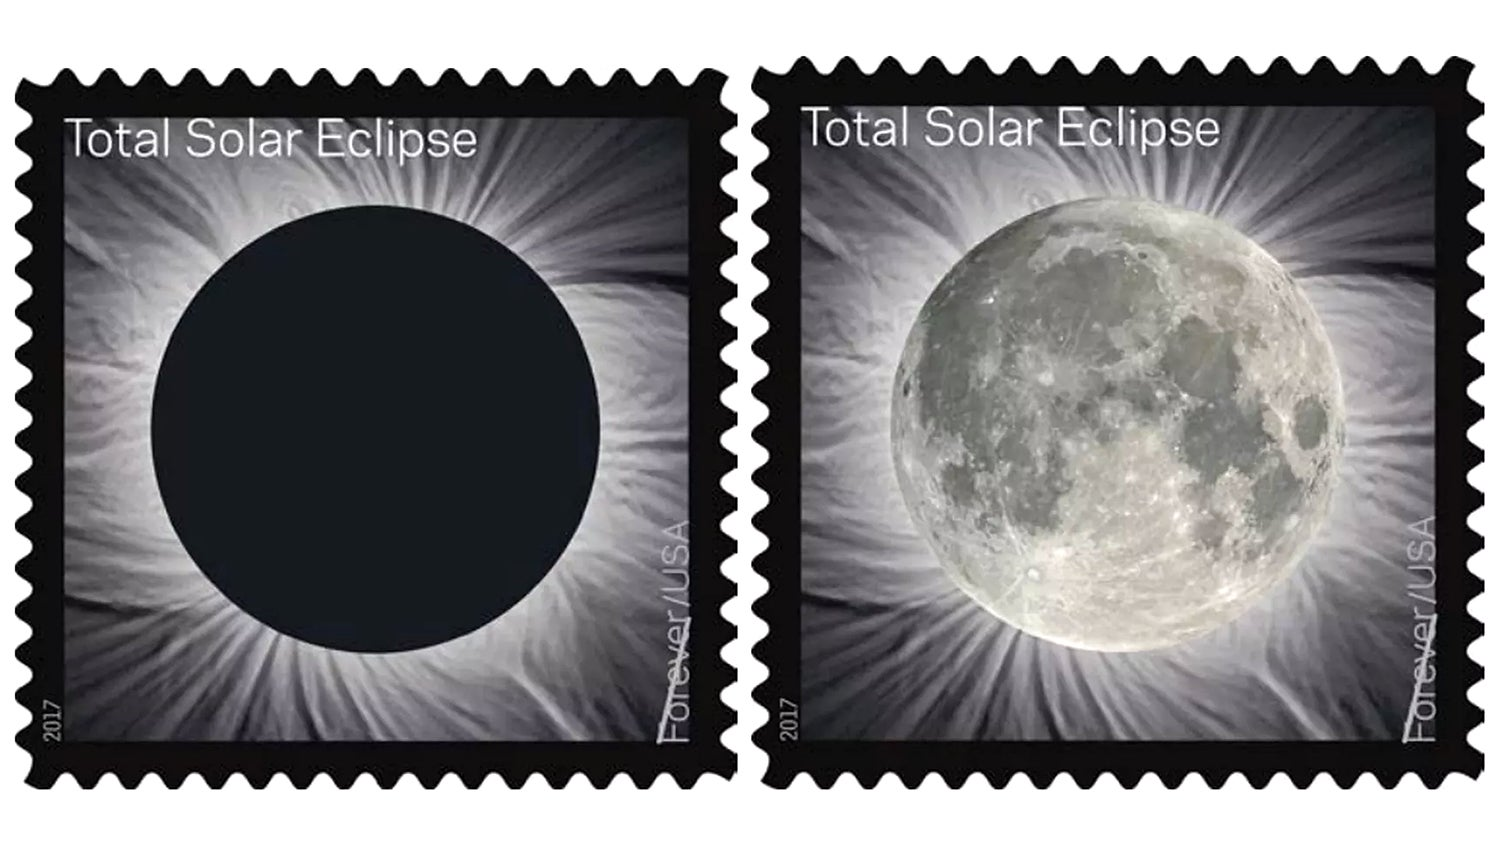 The Moon Magically Appears On The Post Office's New Total Solar Eclipse Stamp